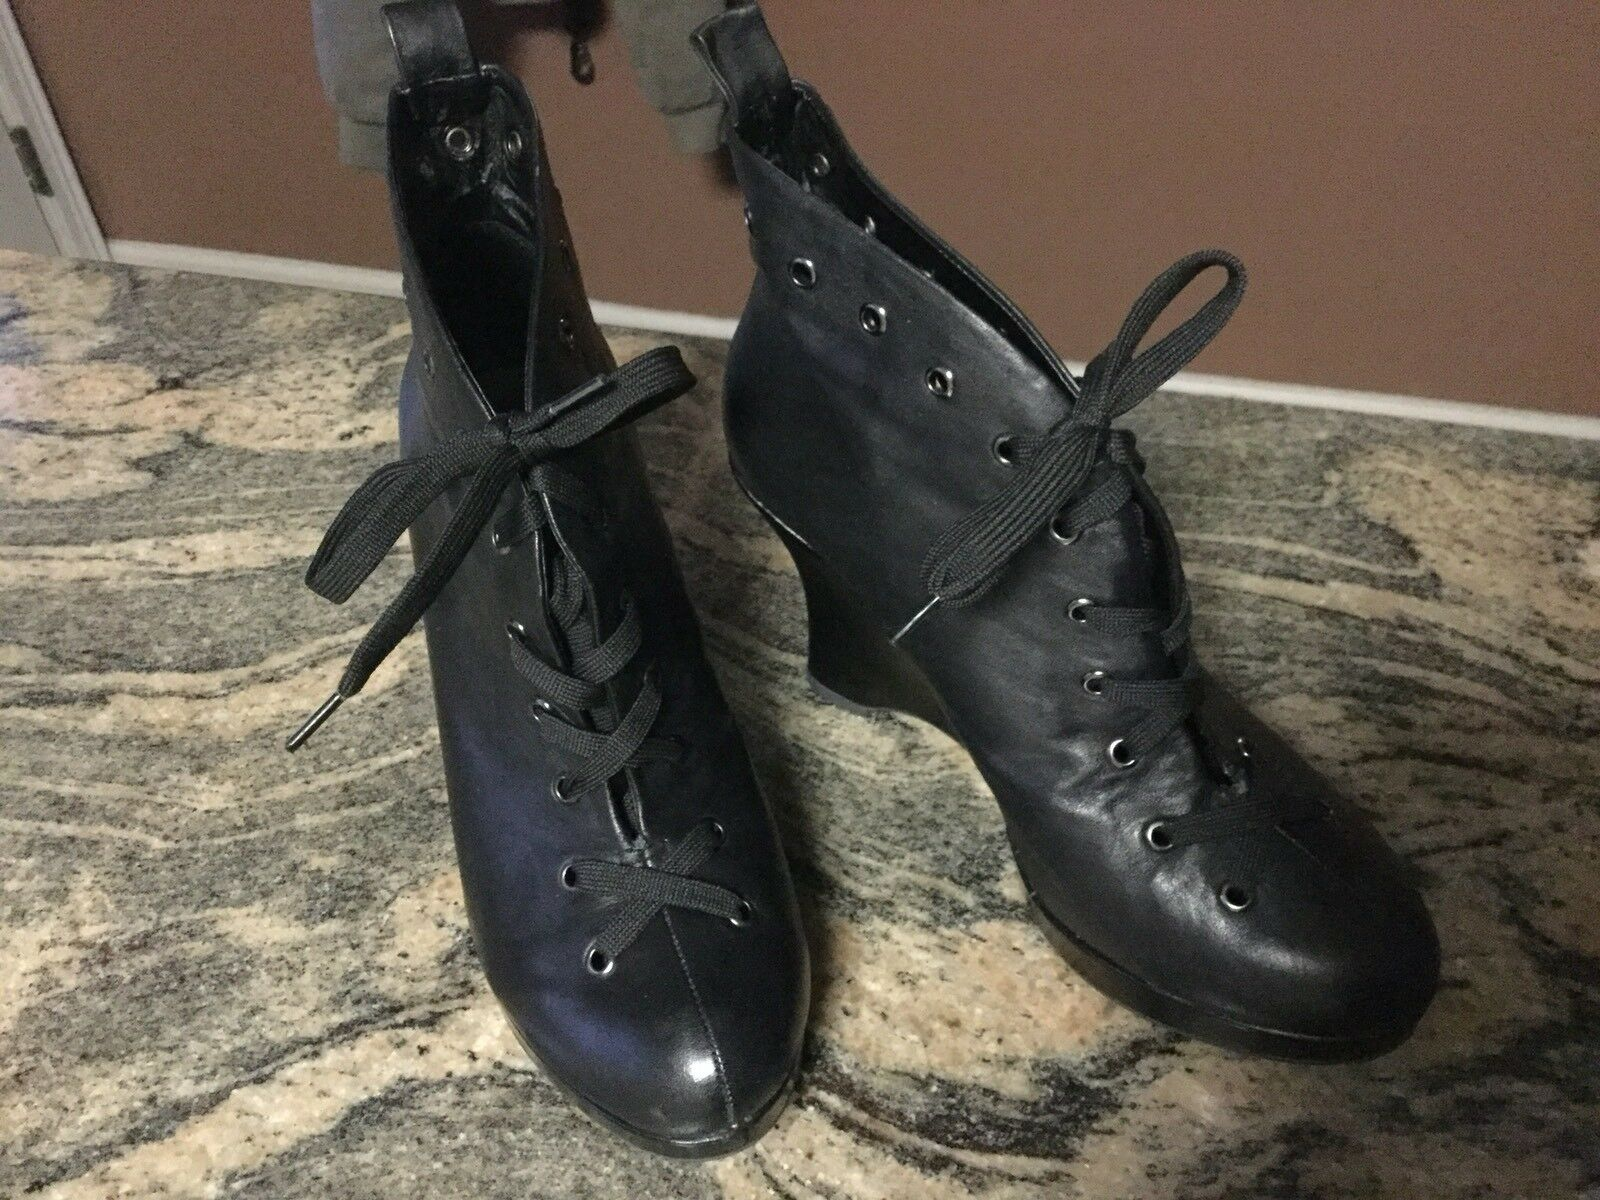 COOL CASUAL SLOW AND STEADY WINS THE RACE LACE UP PLATFORM schuhe SZ 9